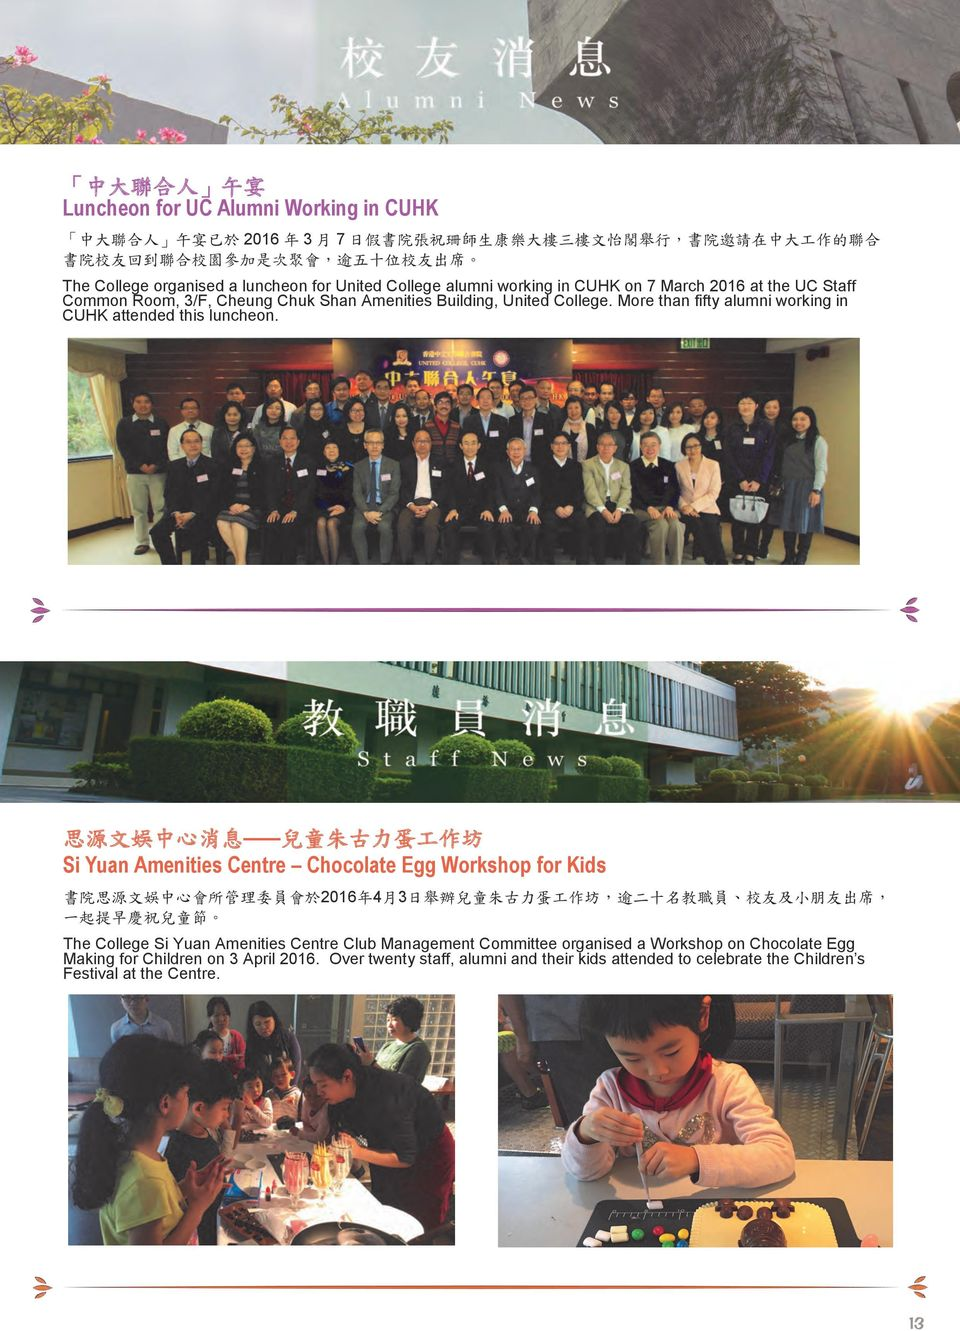 More than fifty alumni working in CUHK attended this luncheon.